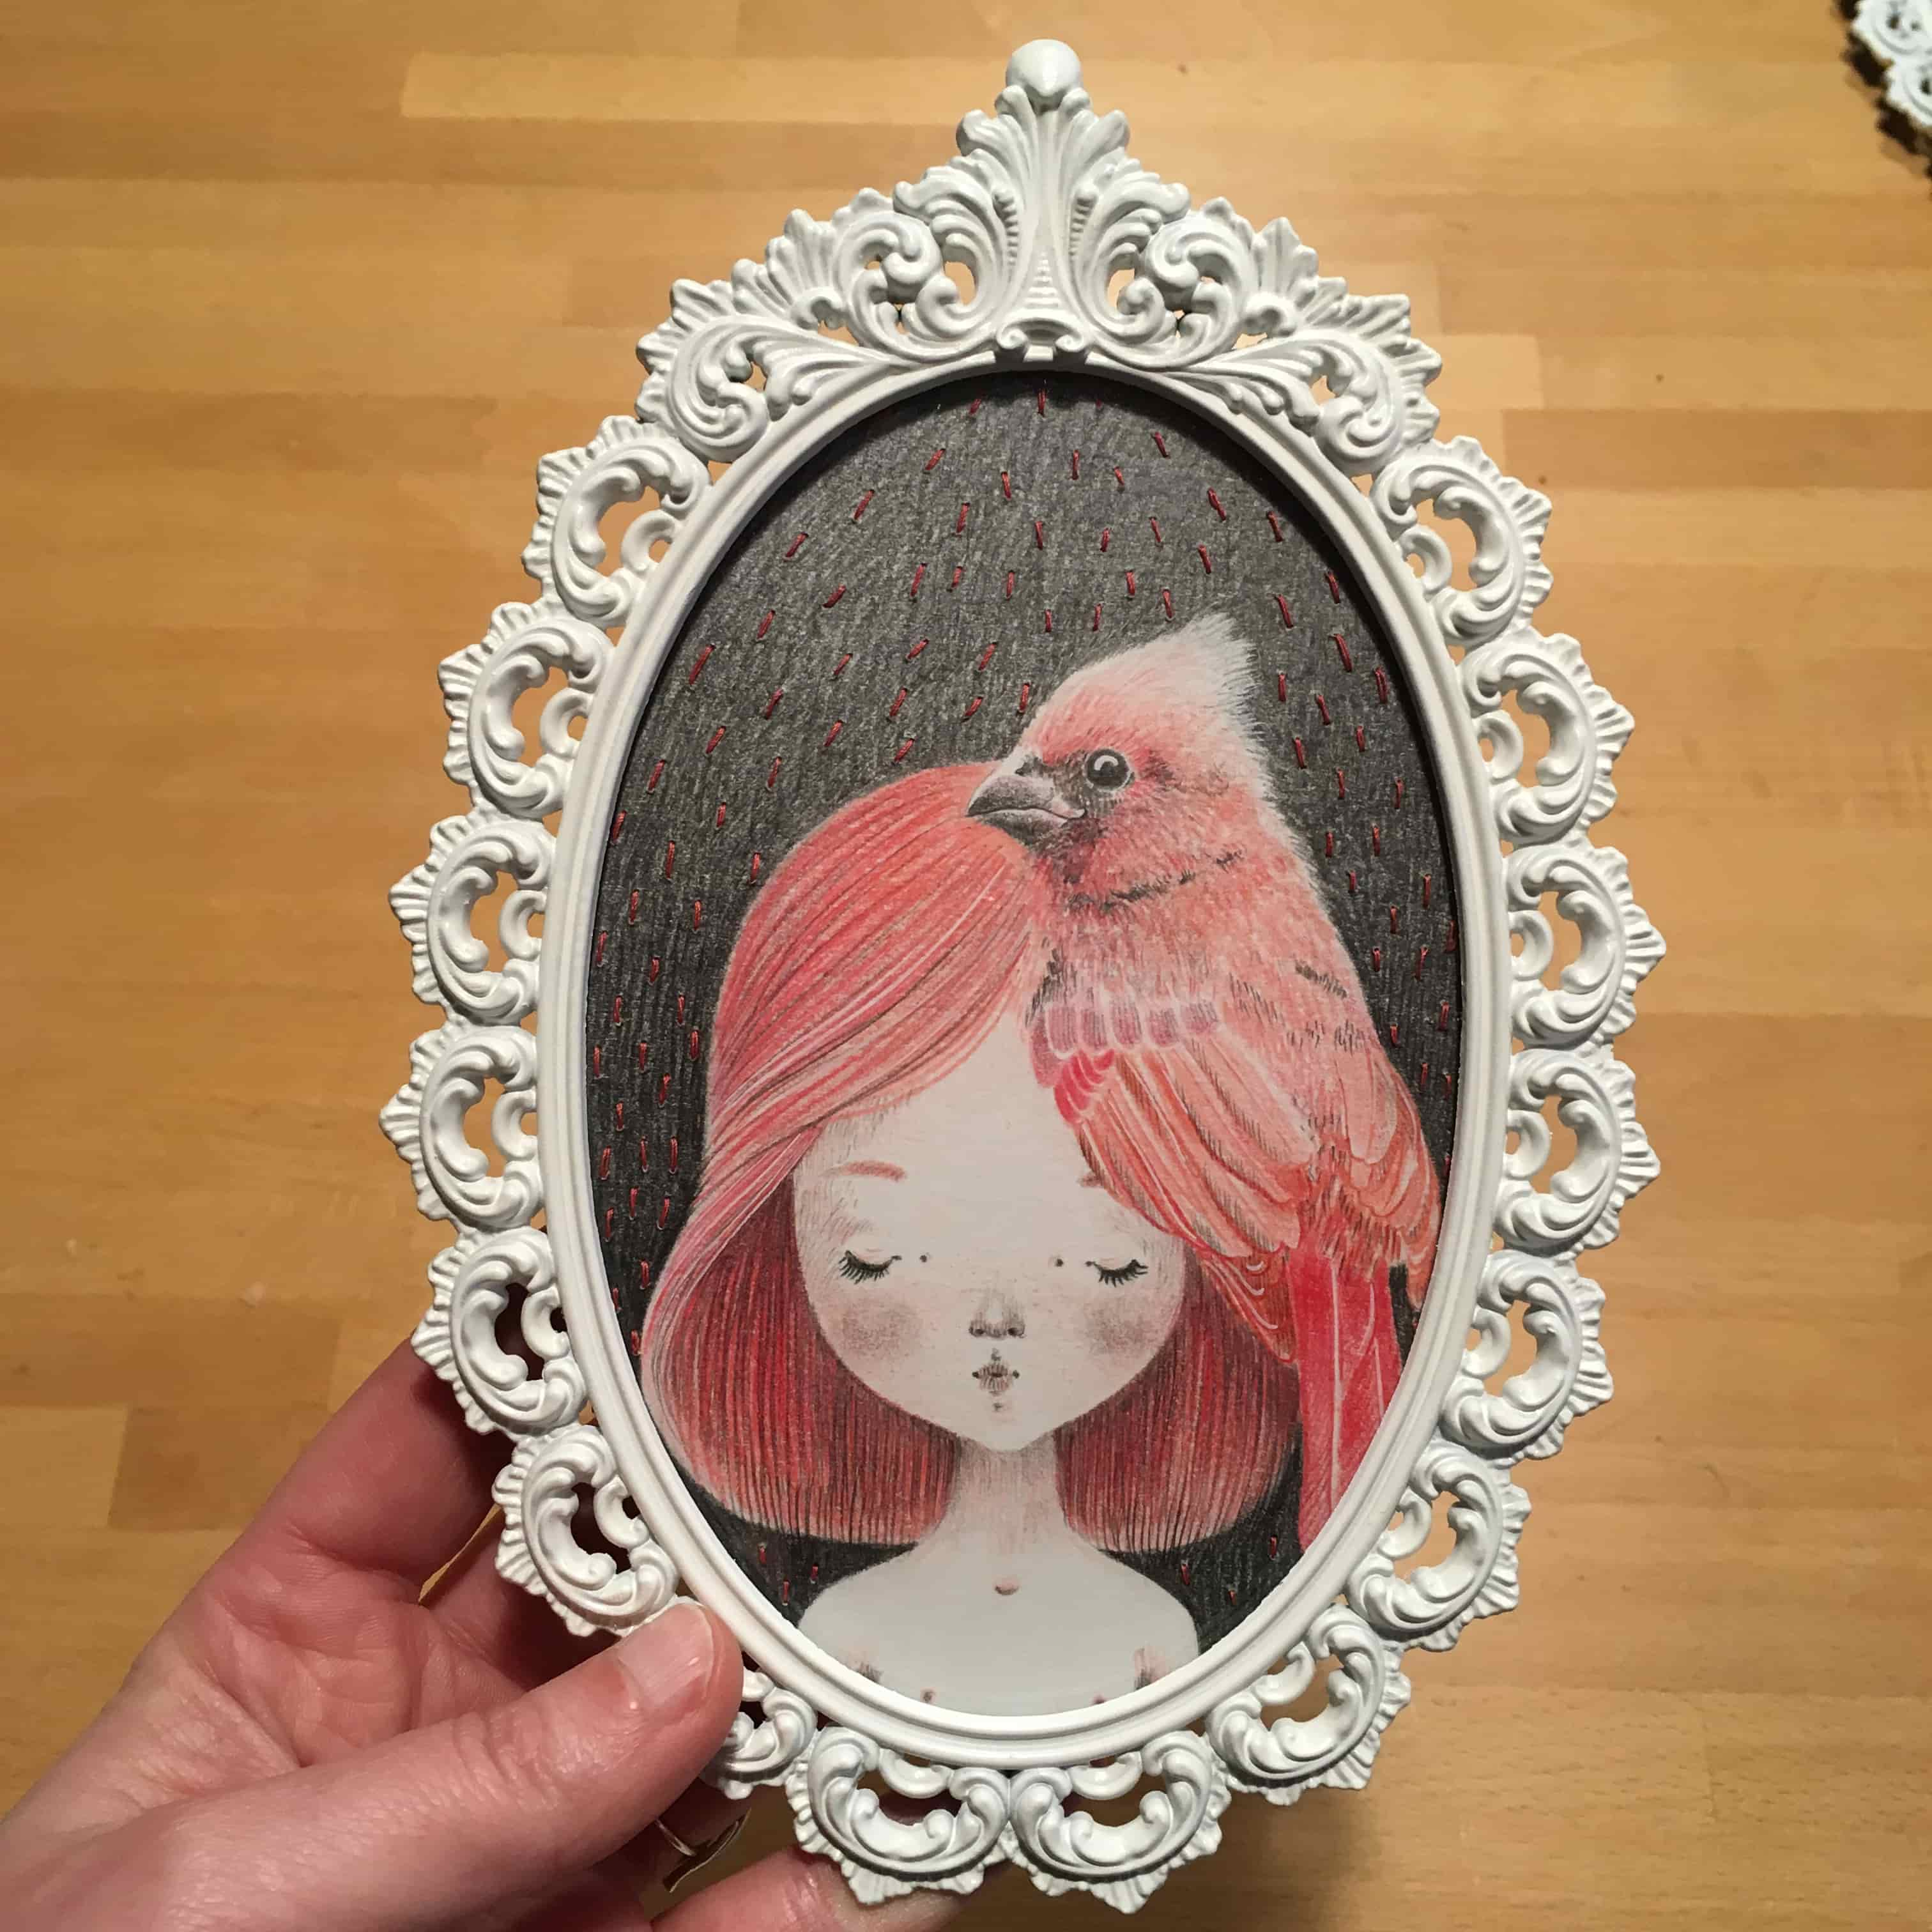 seforapons-graphite-embroidering-coloredpencil-pink-bird-girl-symbiosis-momoirochan-3